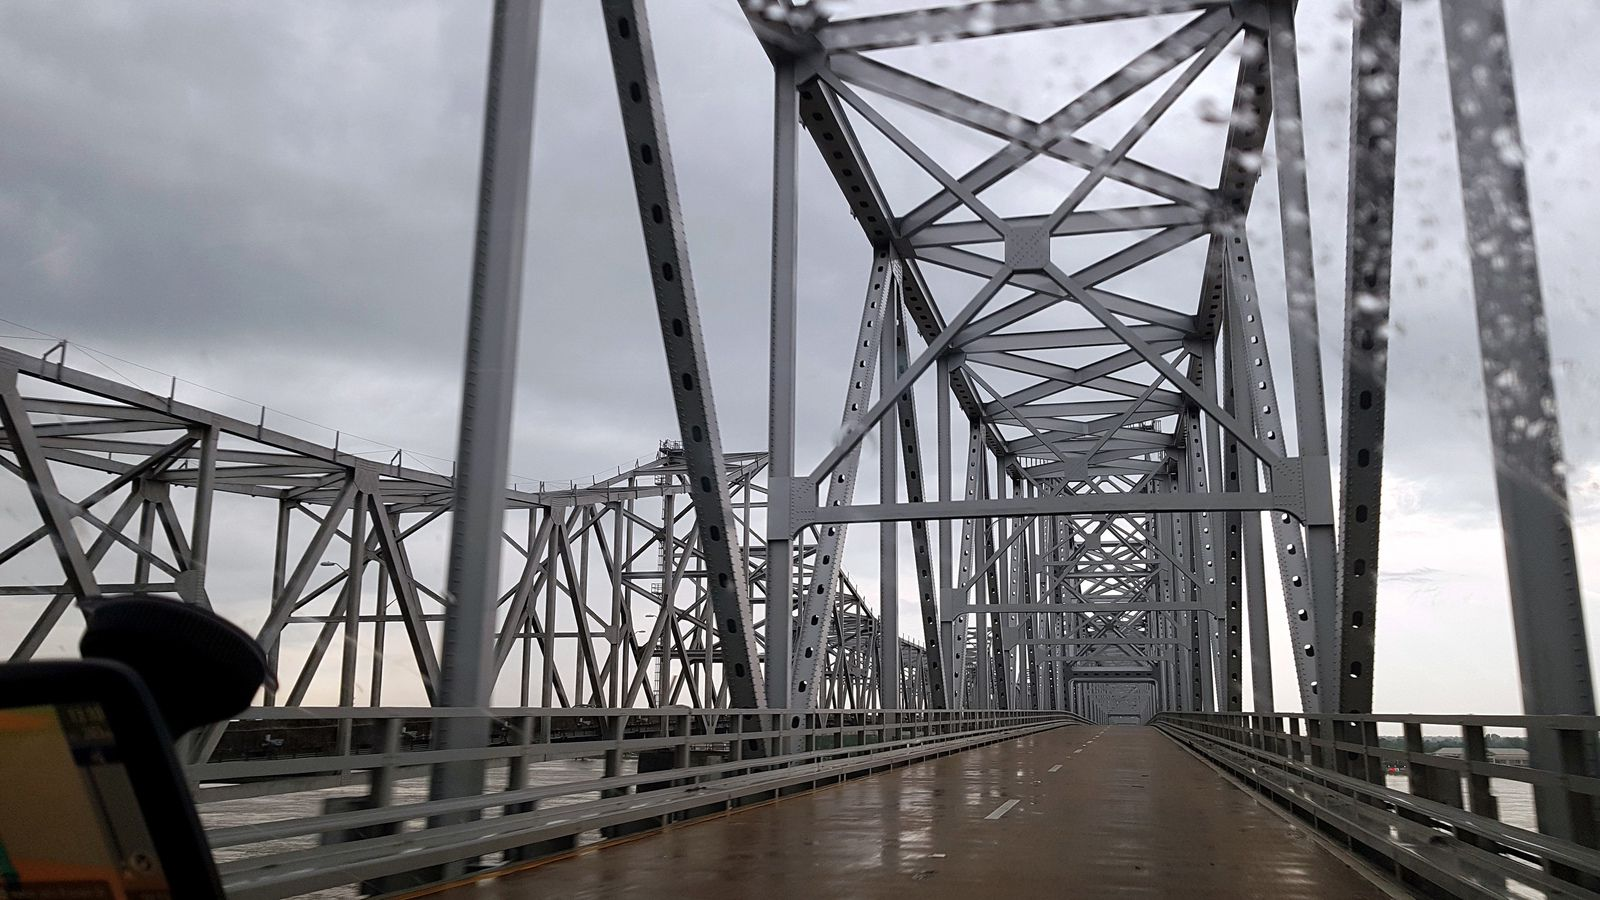 Natchez Bridge